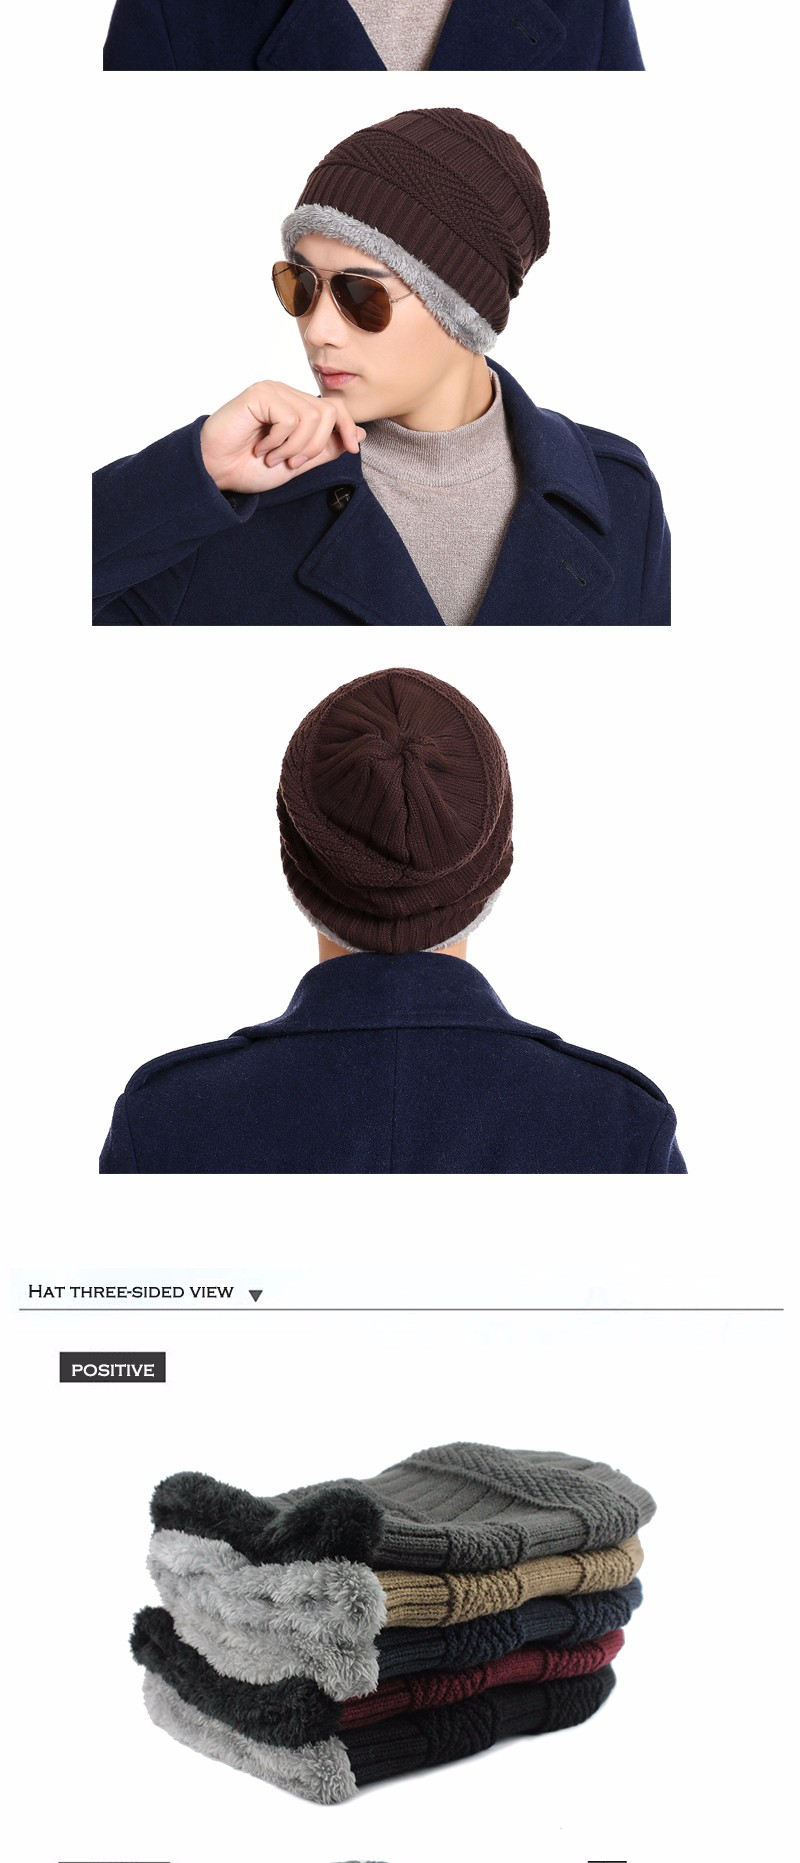 FETSBUY Pure Color Winter Skullies Beanies Hat Knit Winter Hat For Man Warm Hat Velvet Cap Bonnet Toucas Inverno Knitted Hats 26